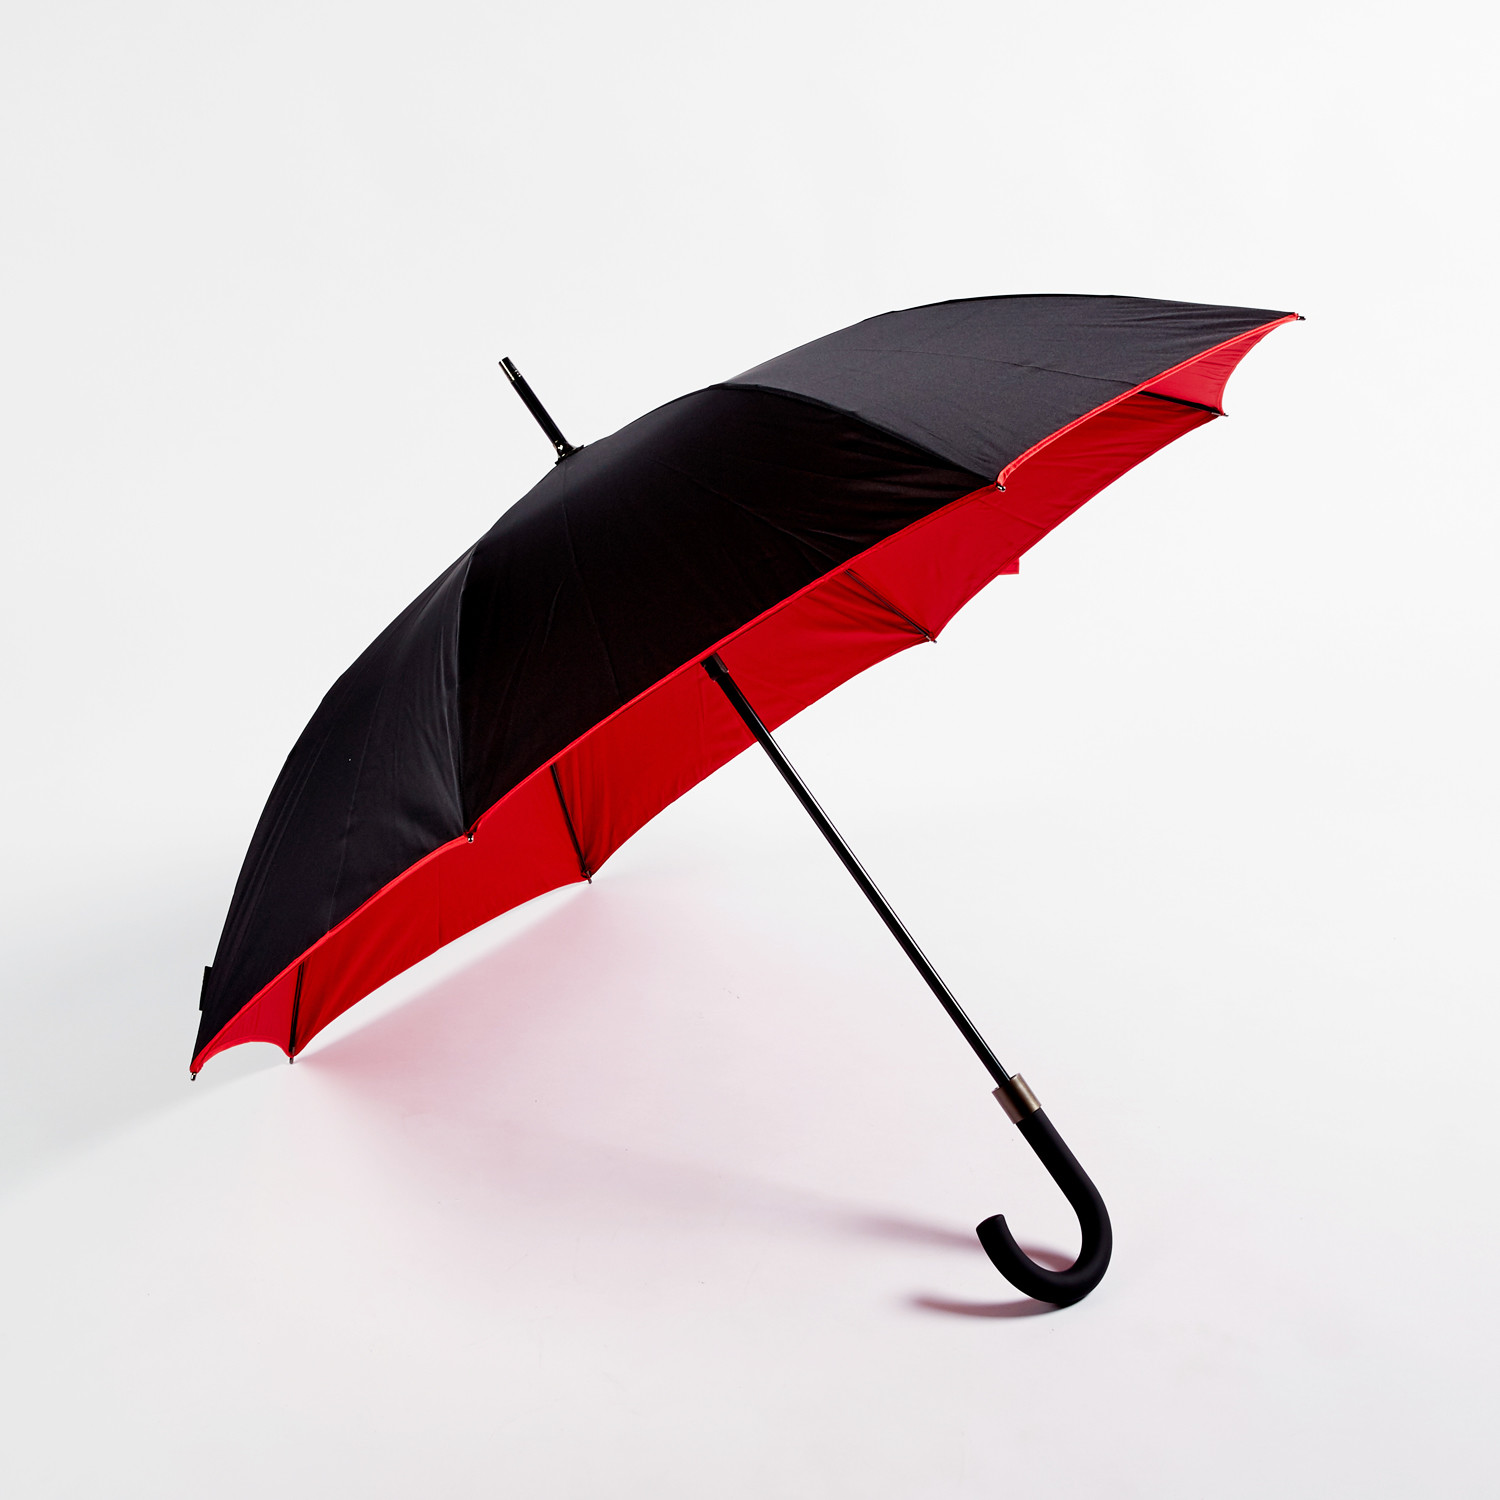 Smati by Susino // Double Canopy Umbrella (Black + Red) & Smati by Susino // Double Canopy Umbrella (Black + Red) - Le Monde ...